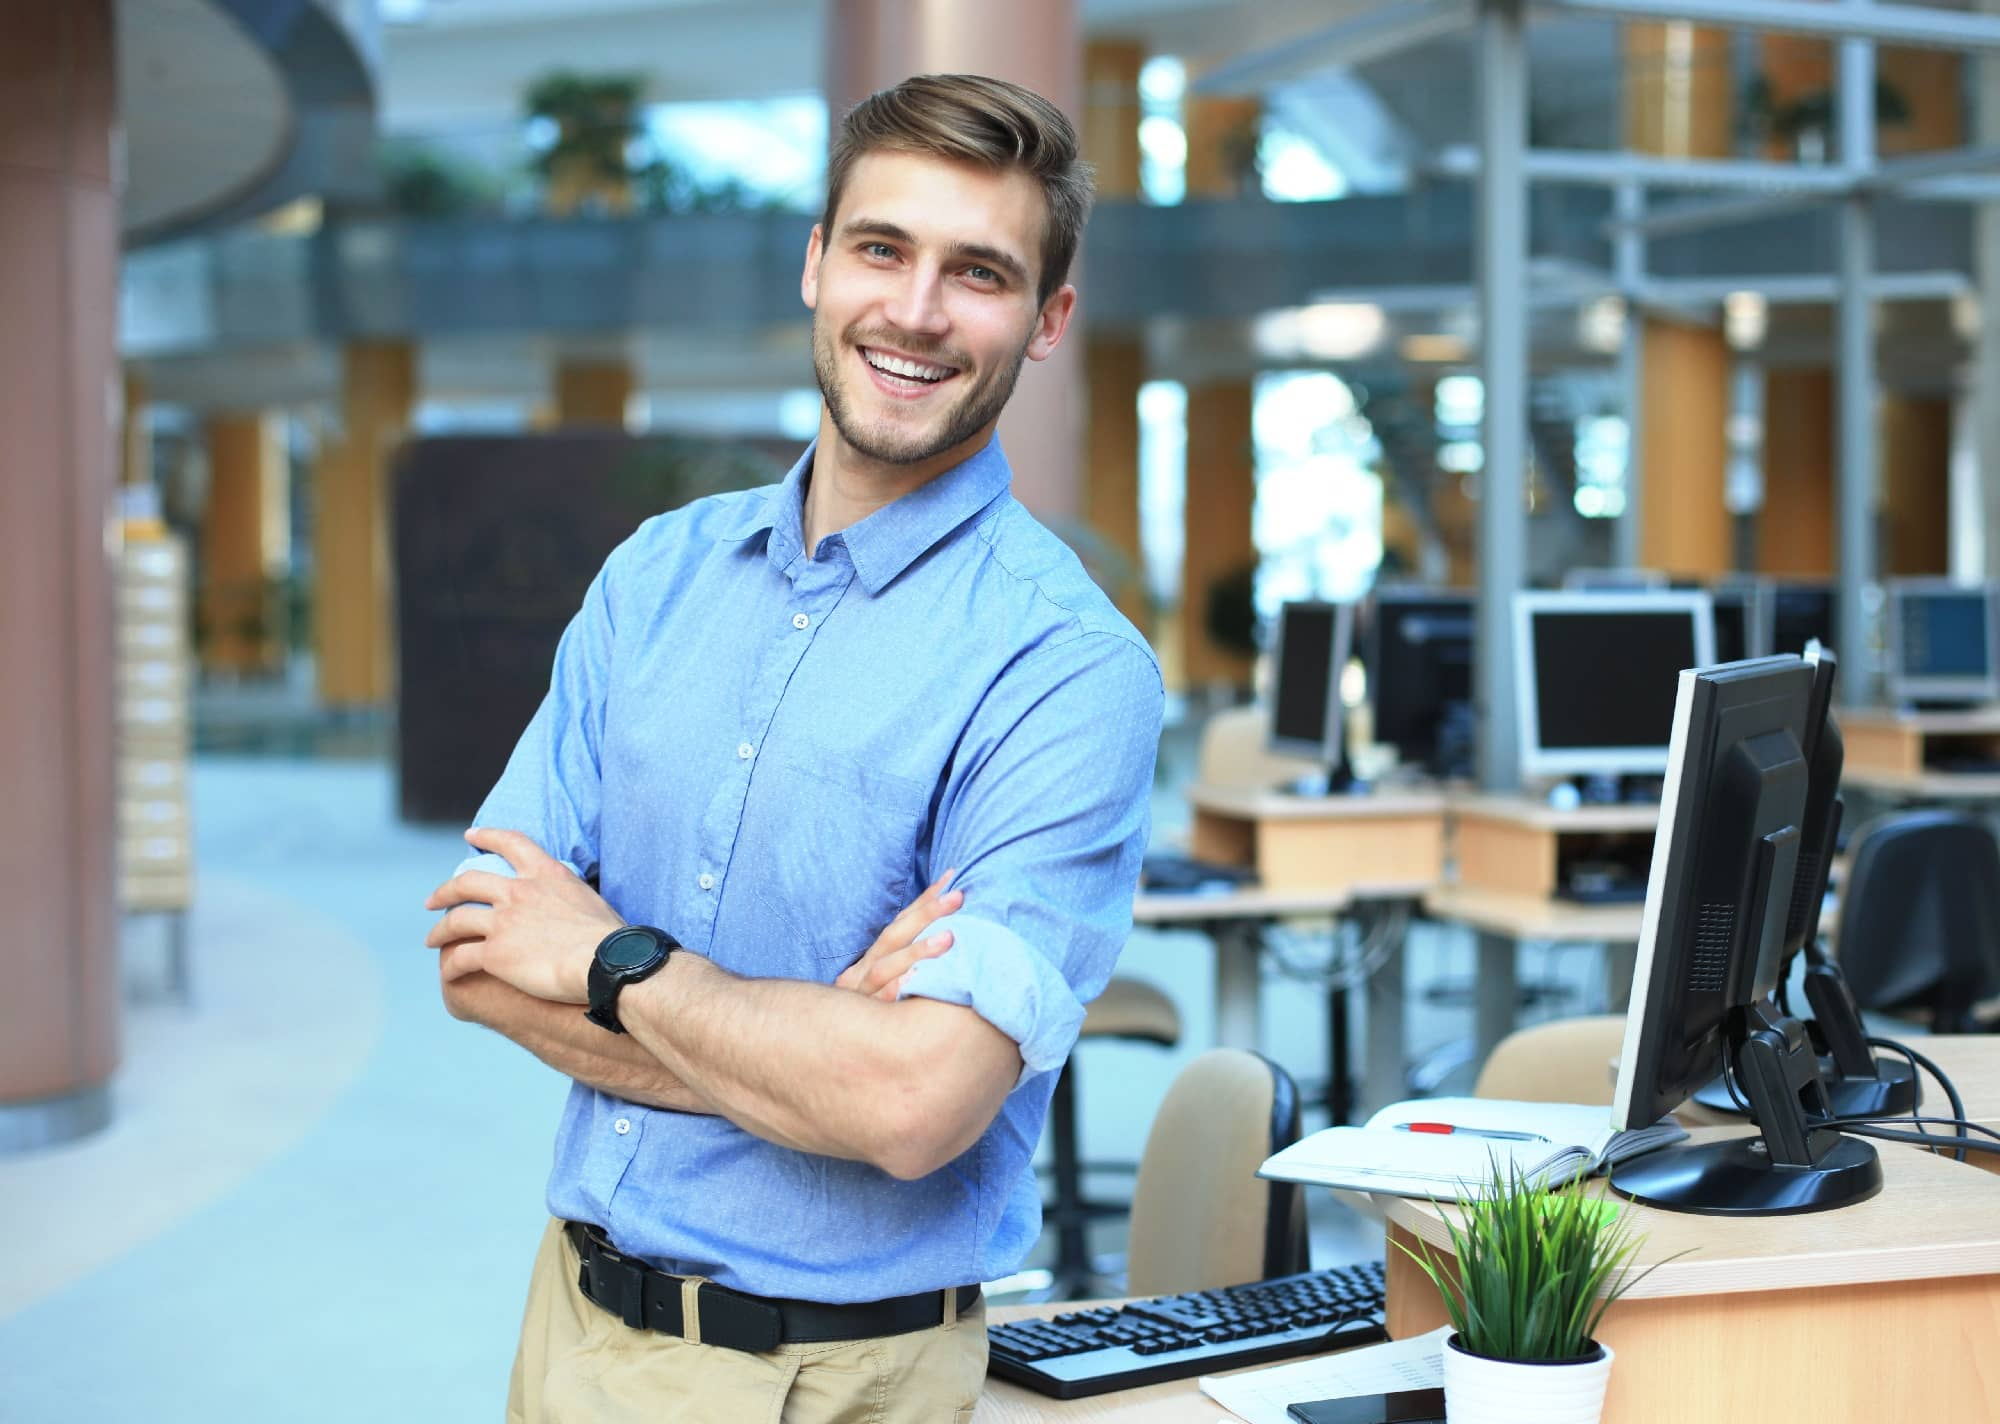 Benefits Administration Services by Propel HR